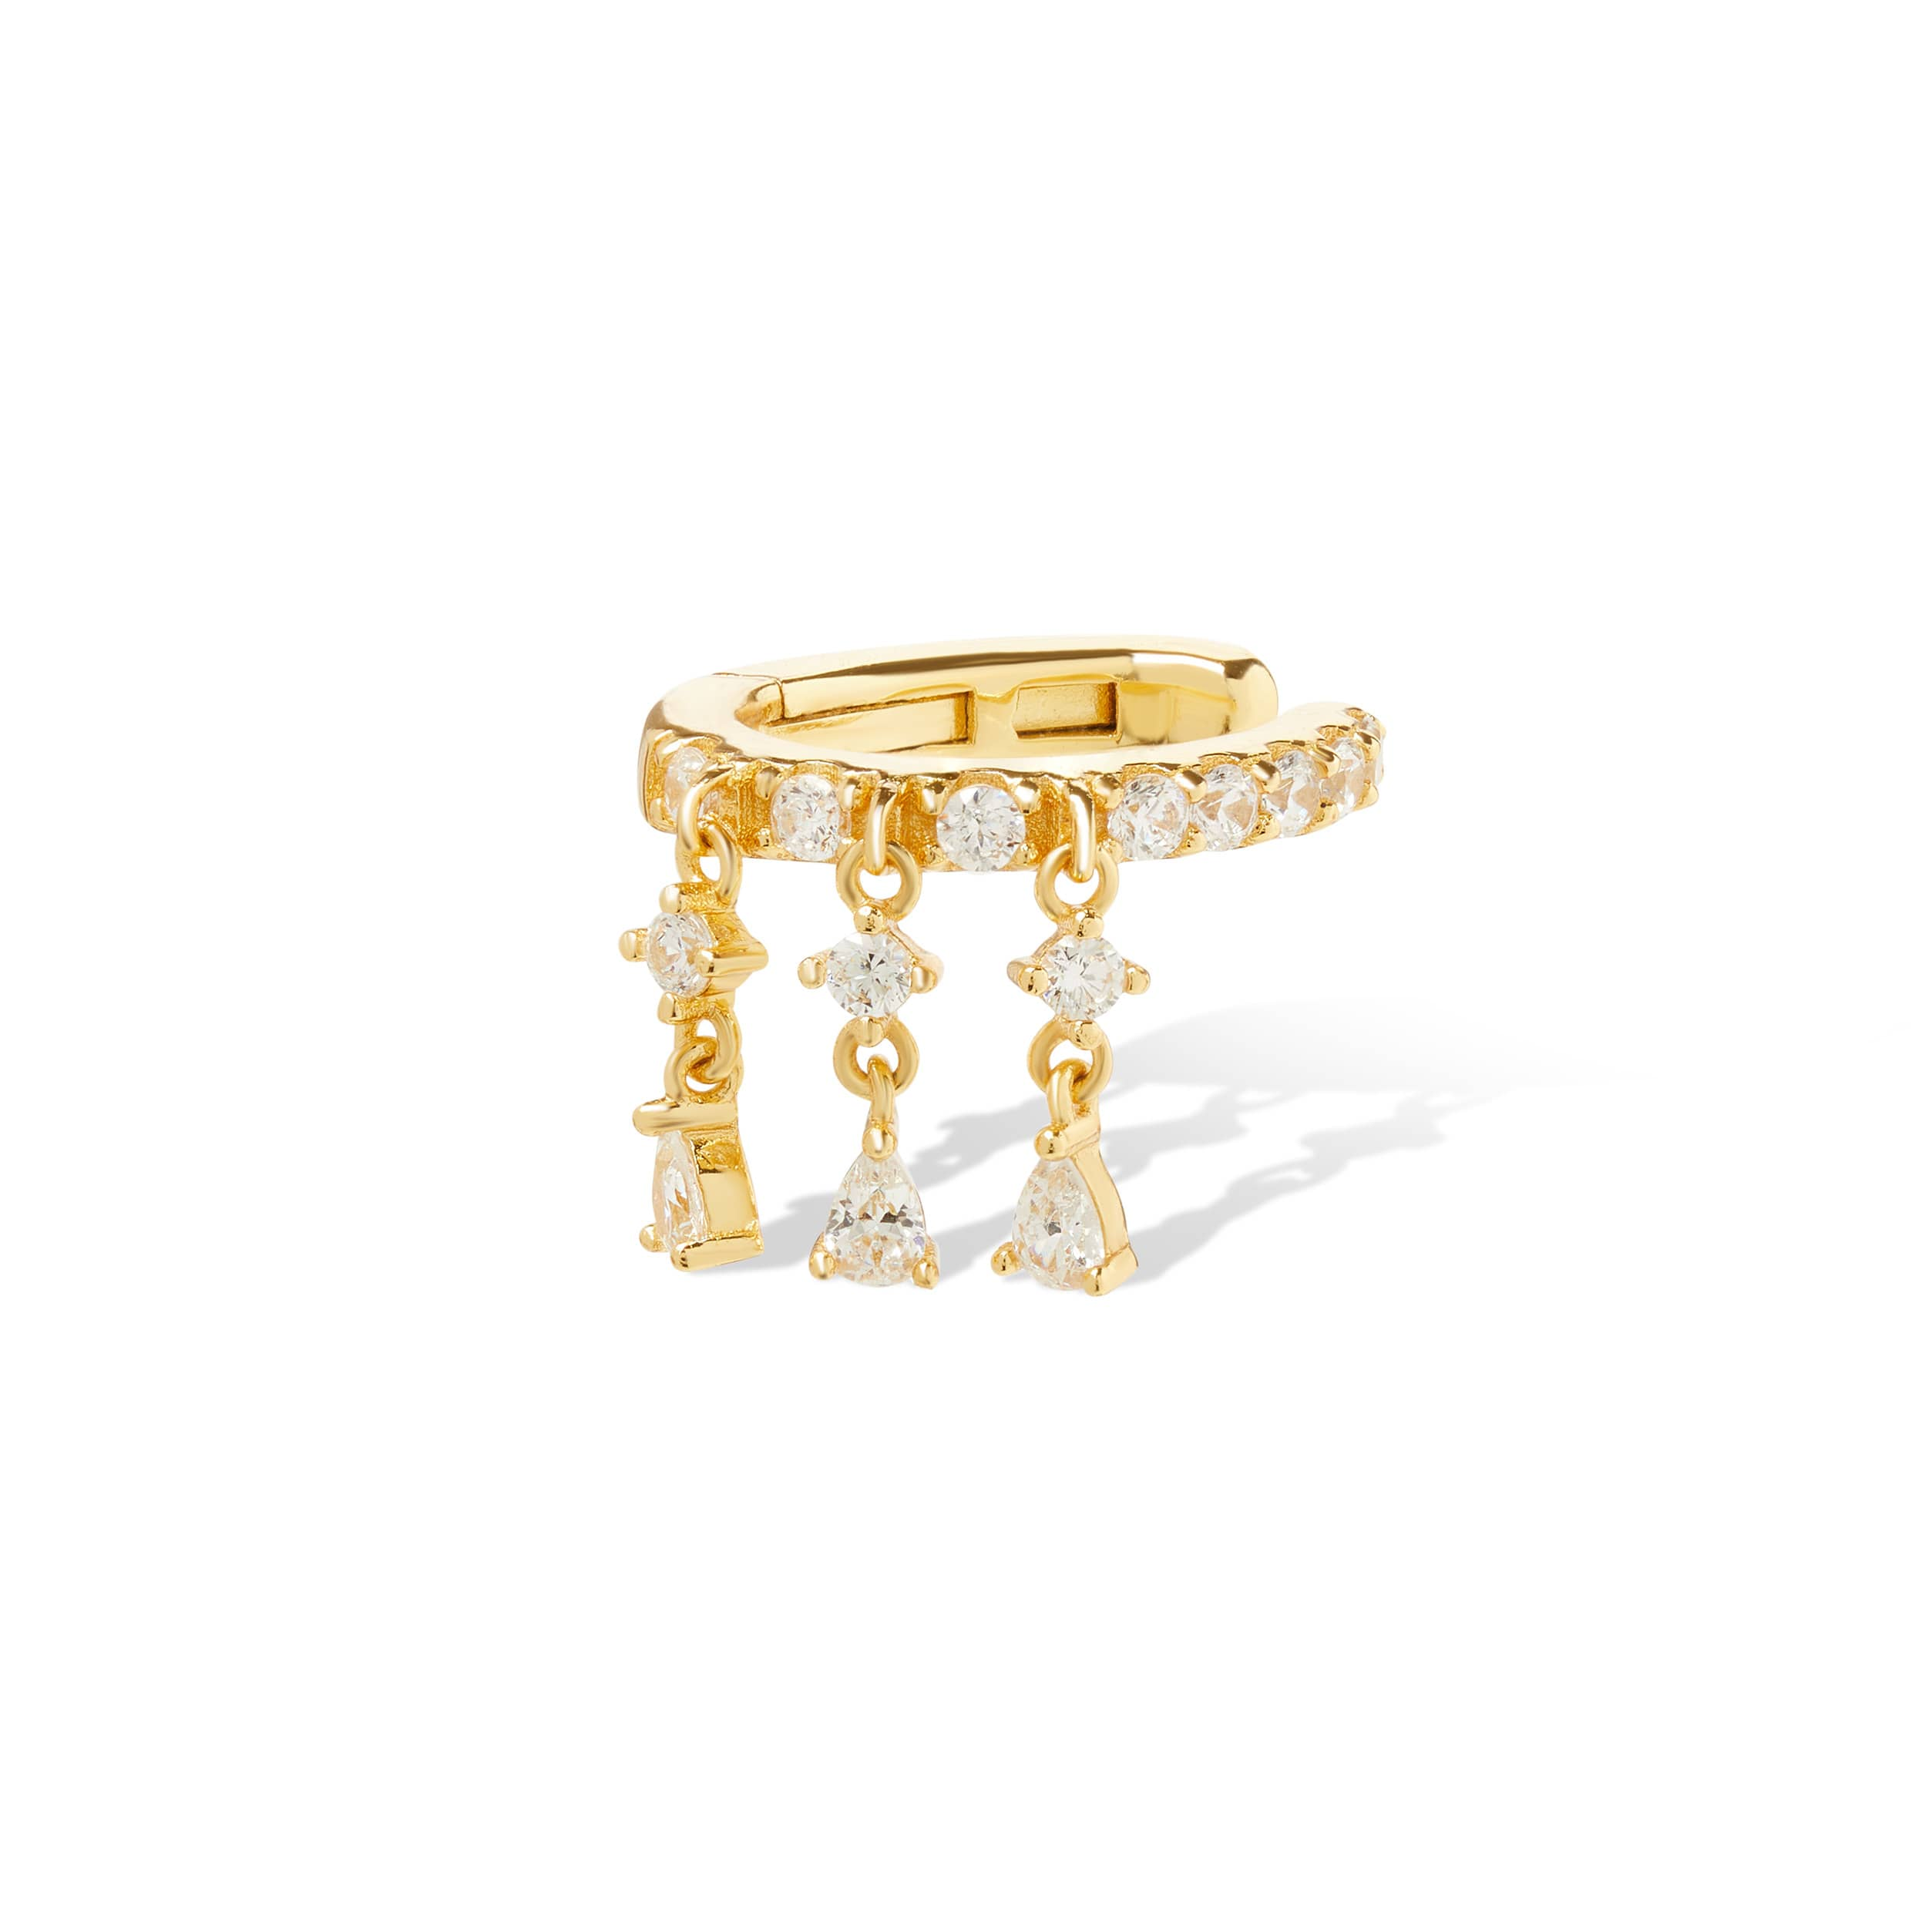 Image of Charlie gold vermeil ear cuff